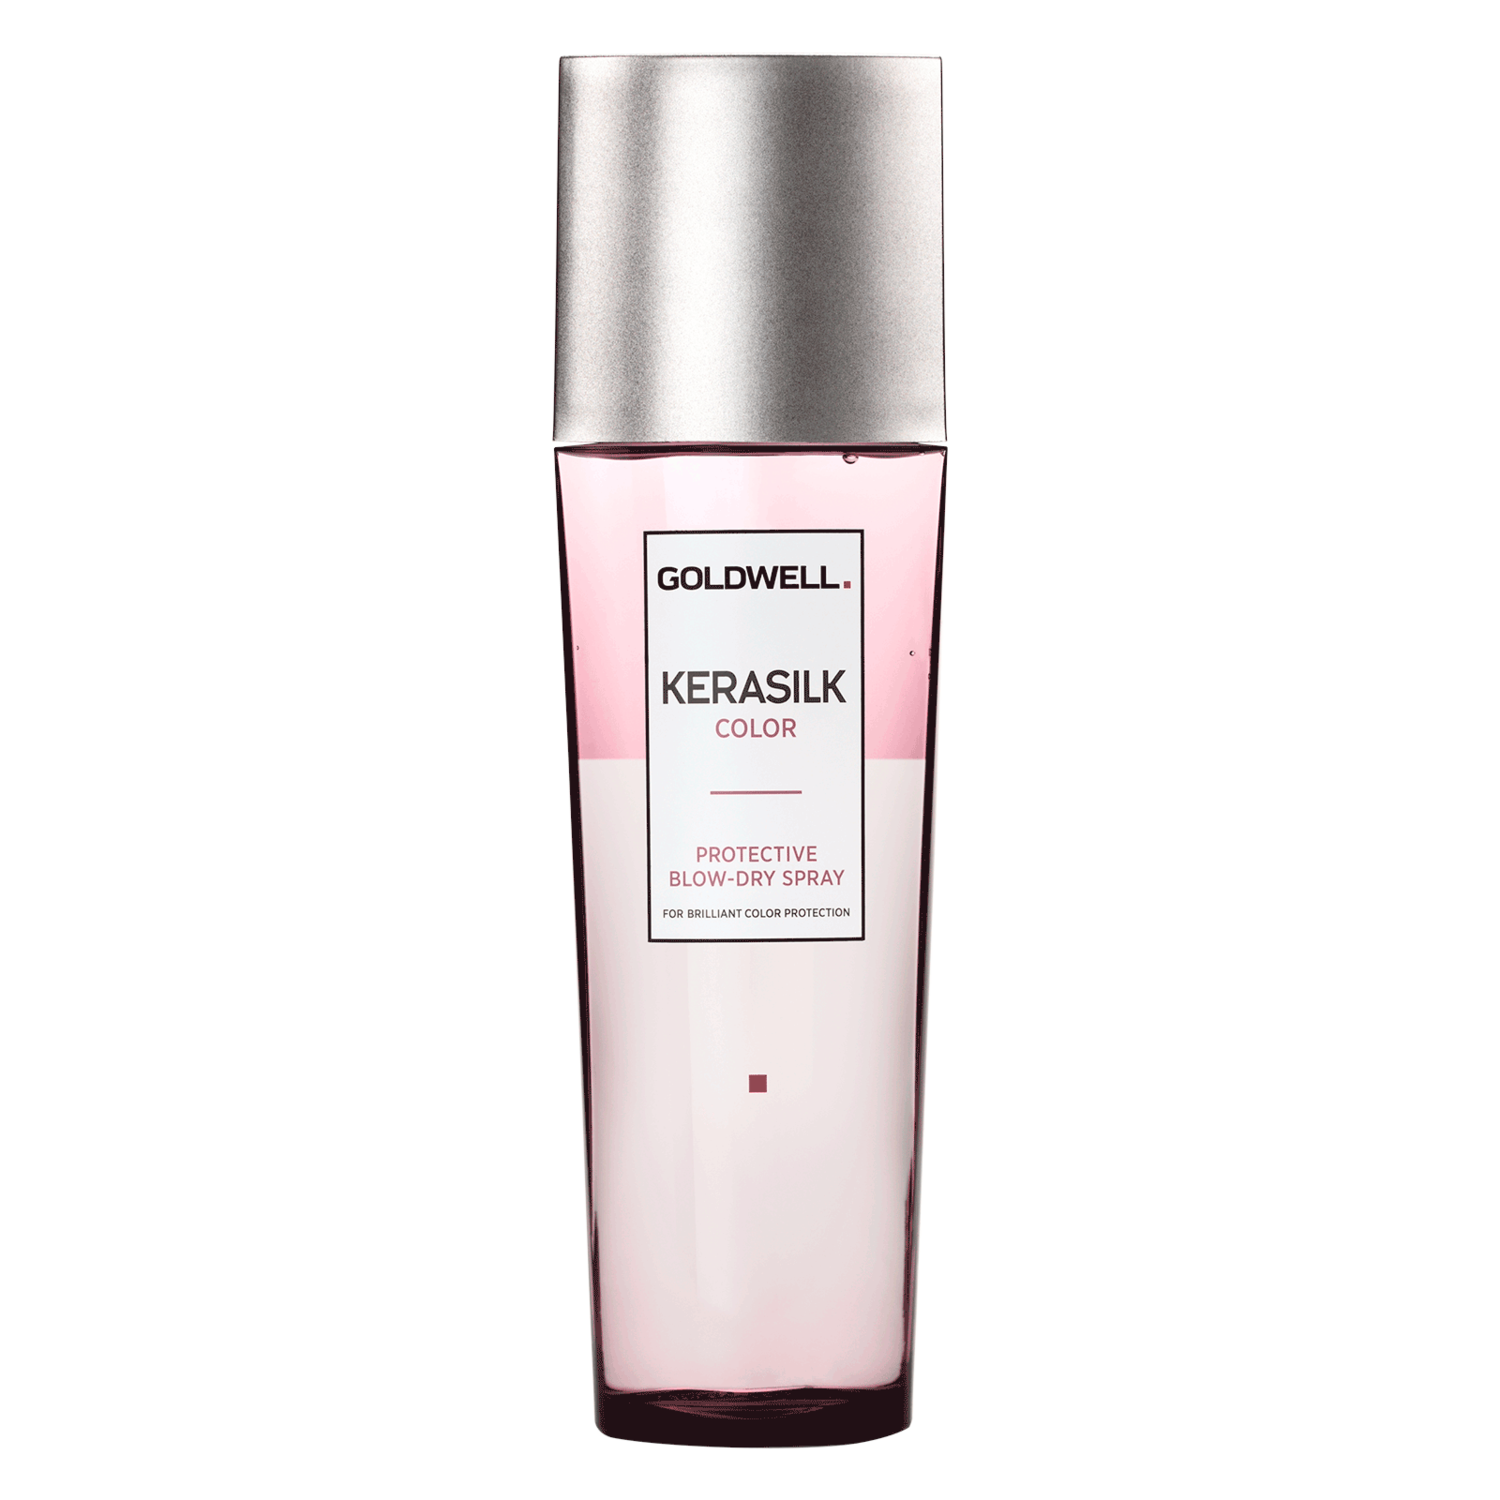 Goldwell Kerasilk Color Protective Blow Sprayer 125 ml